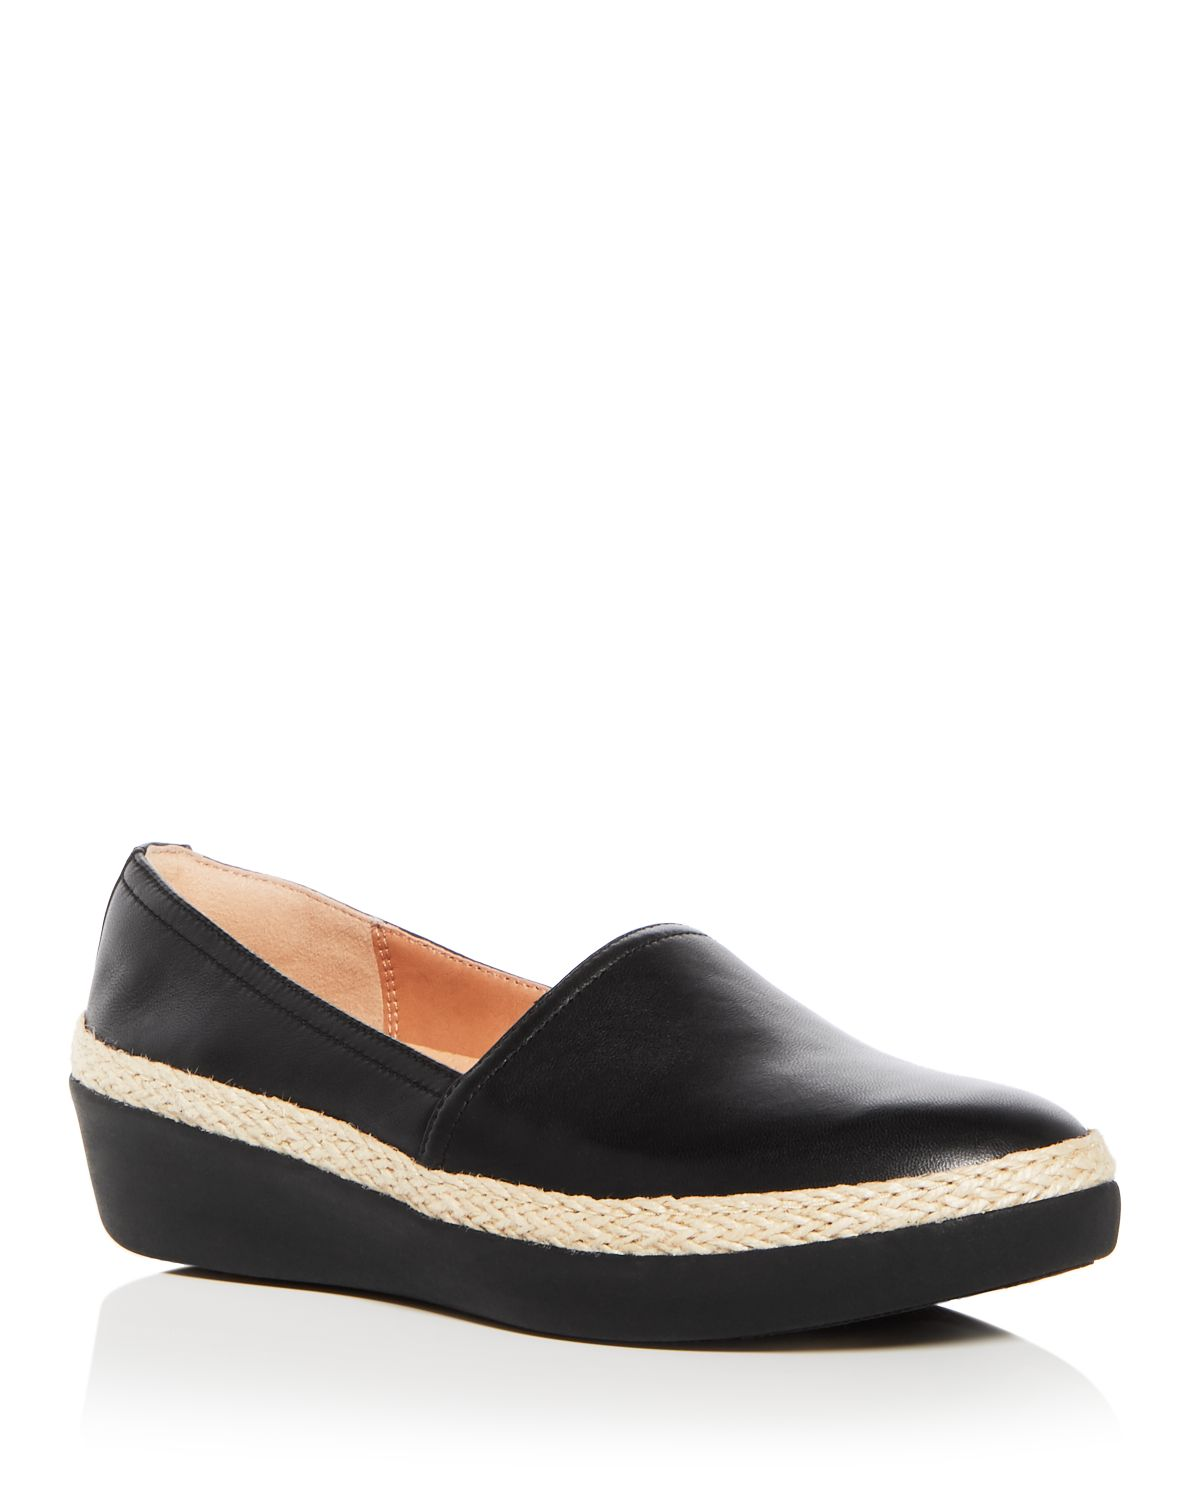 FitFlop Women's Casa Leather Wedge Platform Loafers